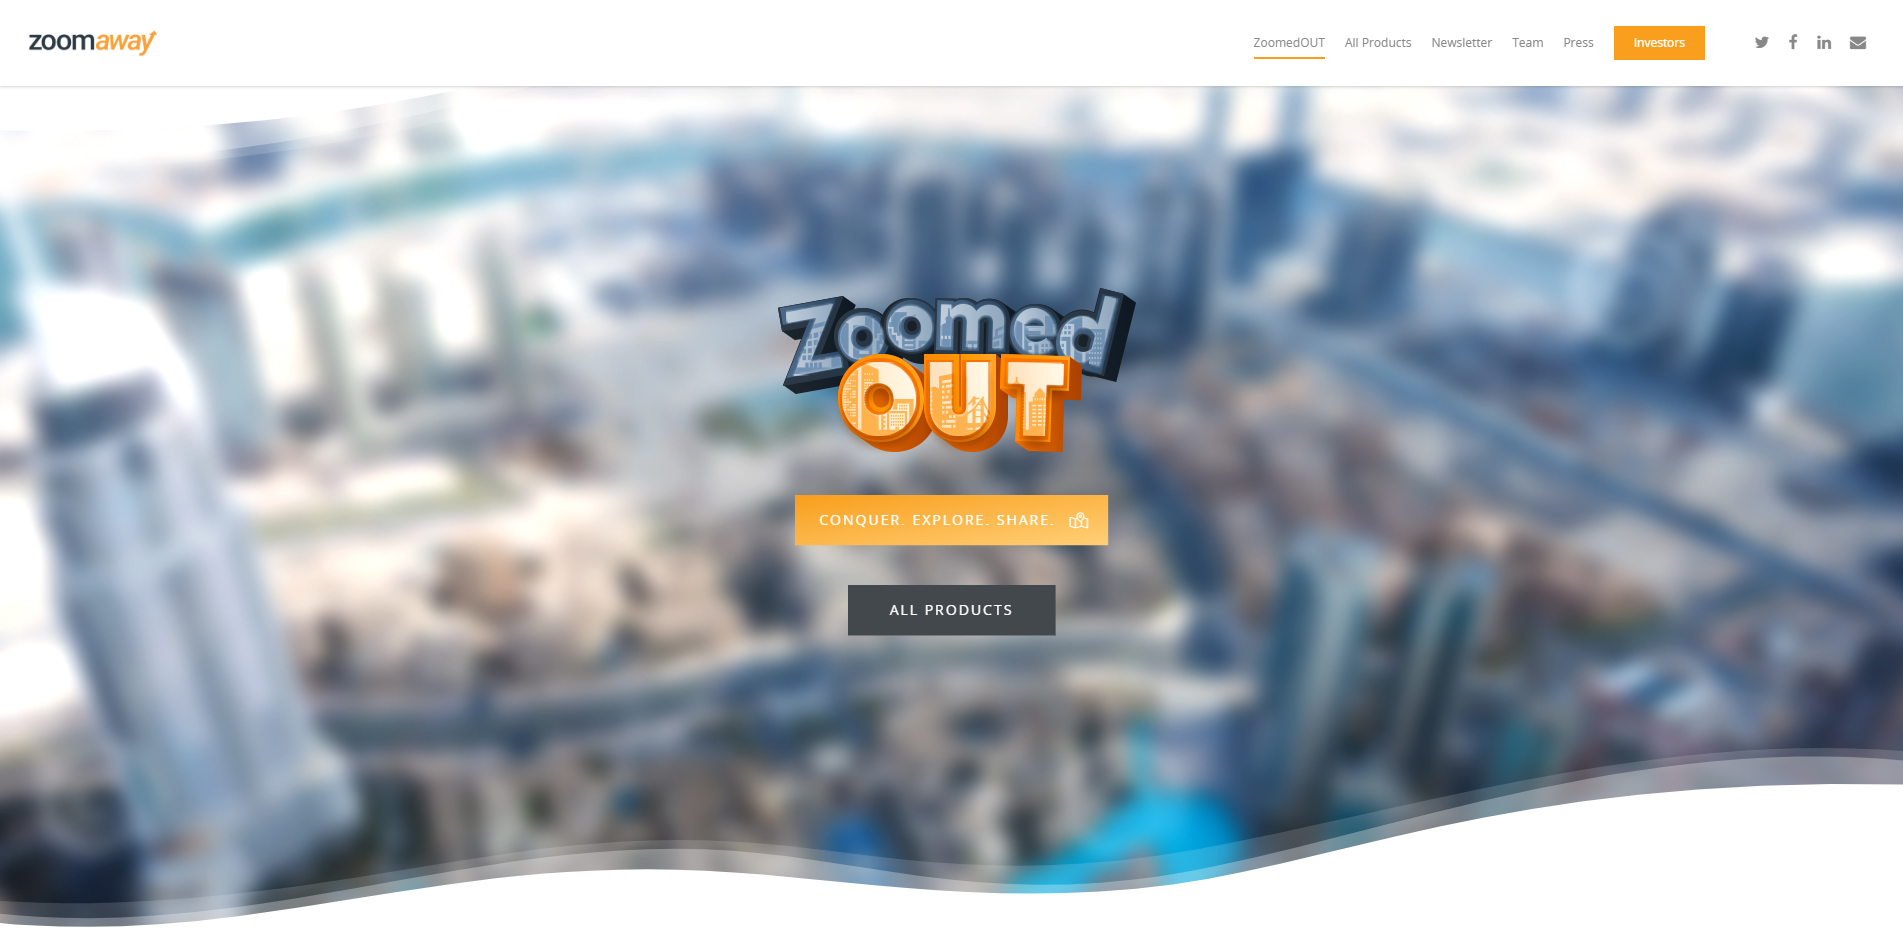 ZoomAway Announces Flagship Product Development Plan and Corporate Website